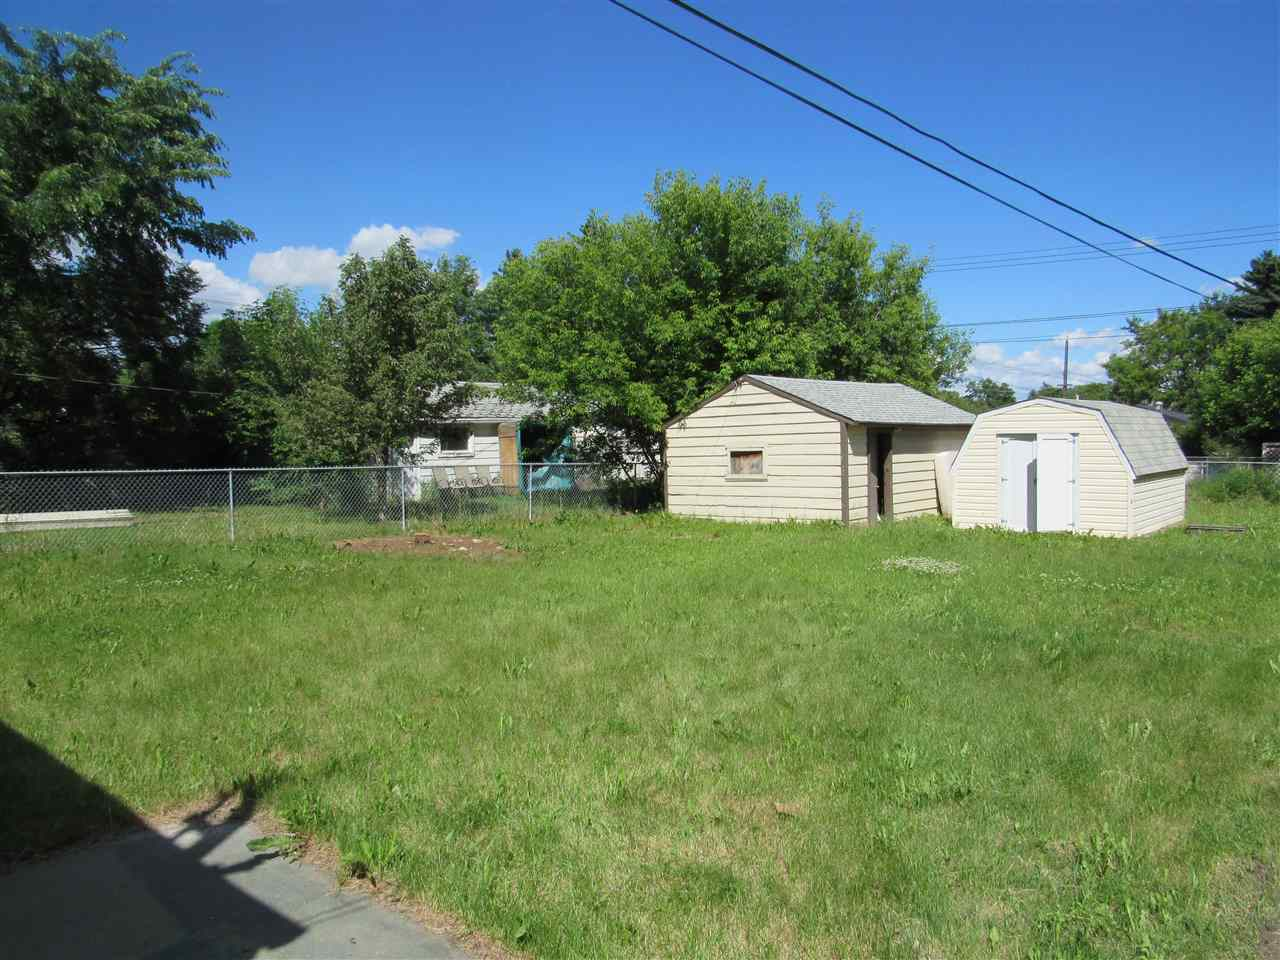 Photo 24: 12807 108 Street in Edmonton: Zone 01 House for sale : MLS(r) # E4069705